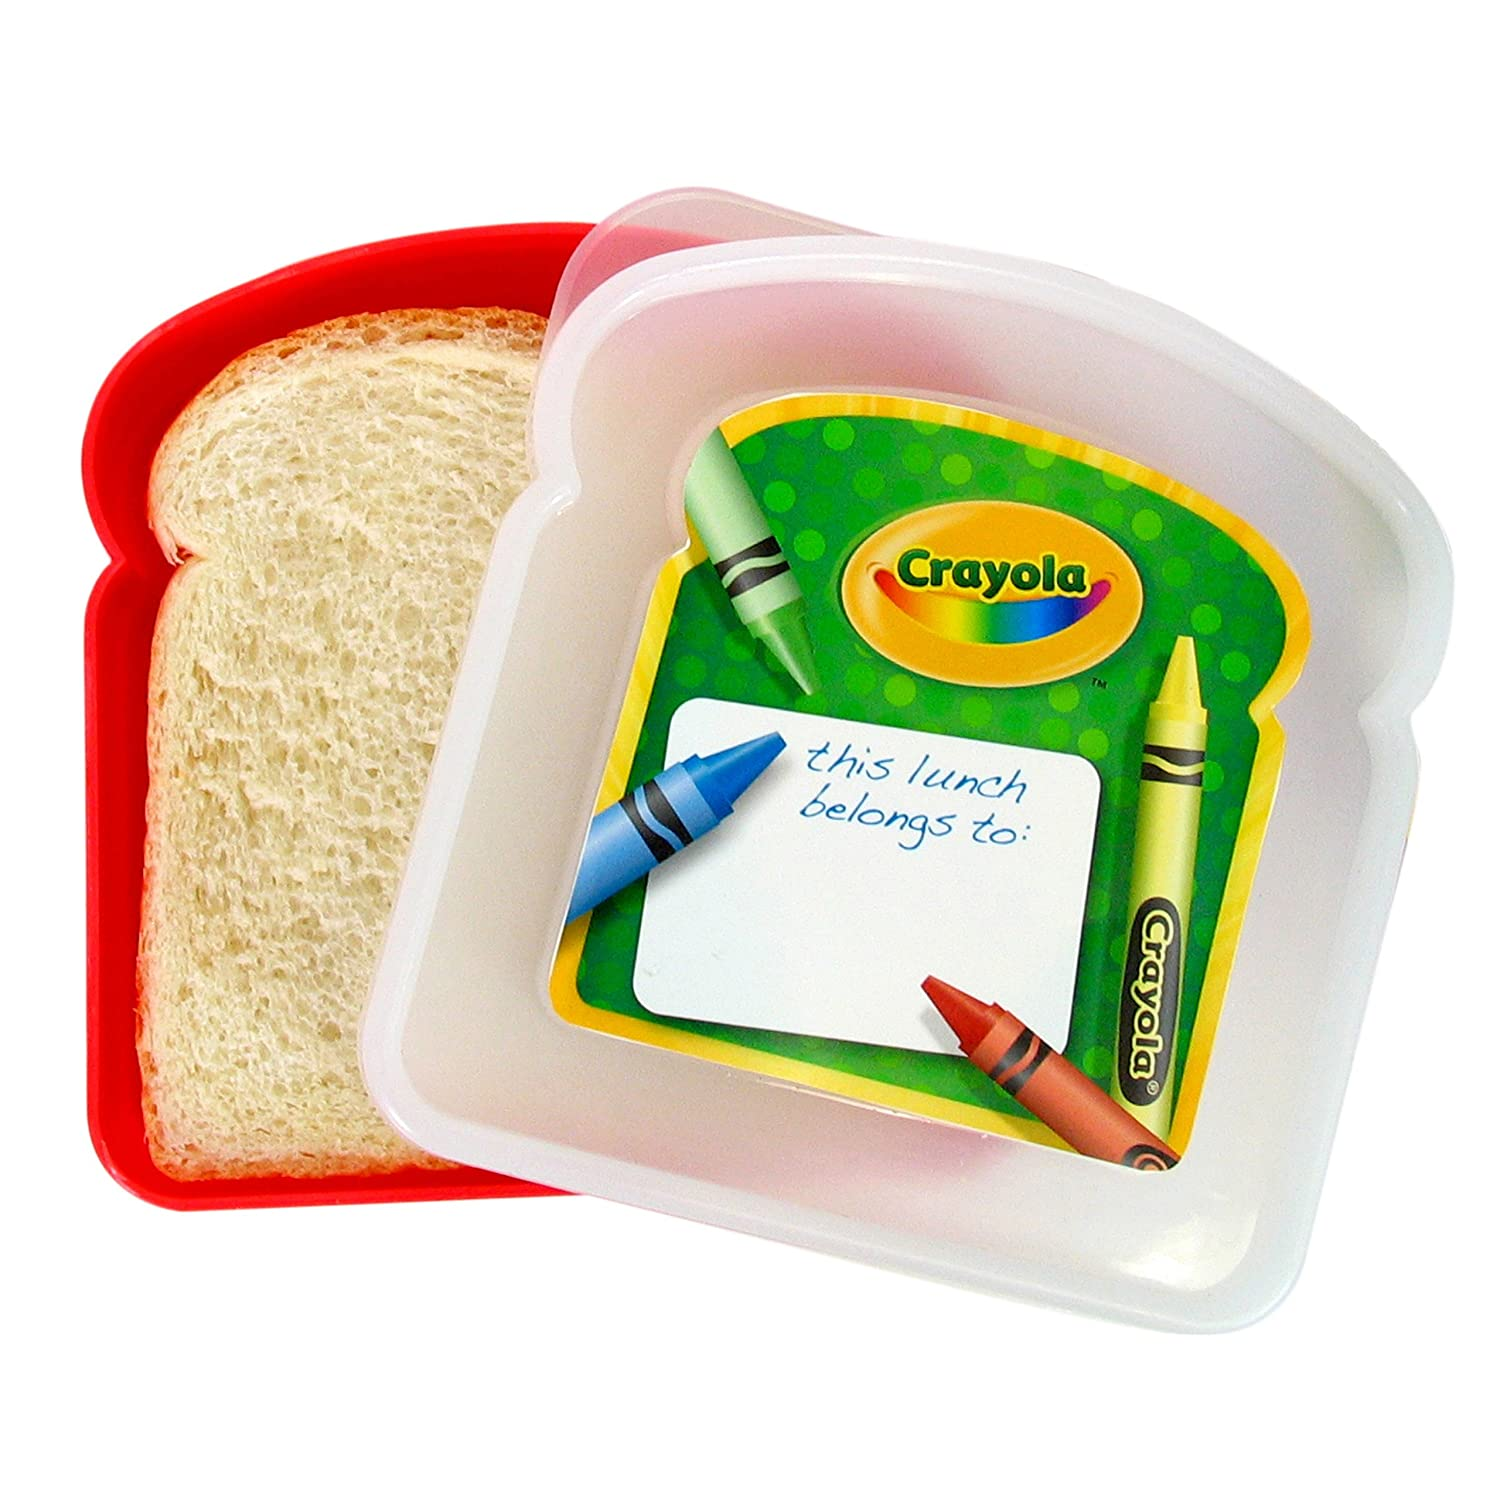 Evriholder Crayola Sandwich Container, Colors Vary - Keeps sandwiches fresh, Made from BPA-free material